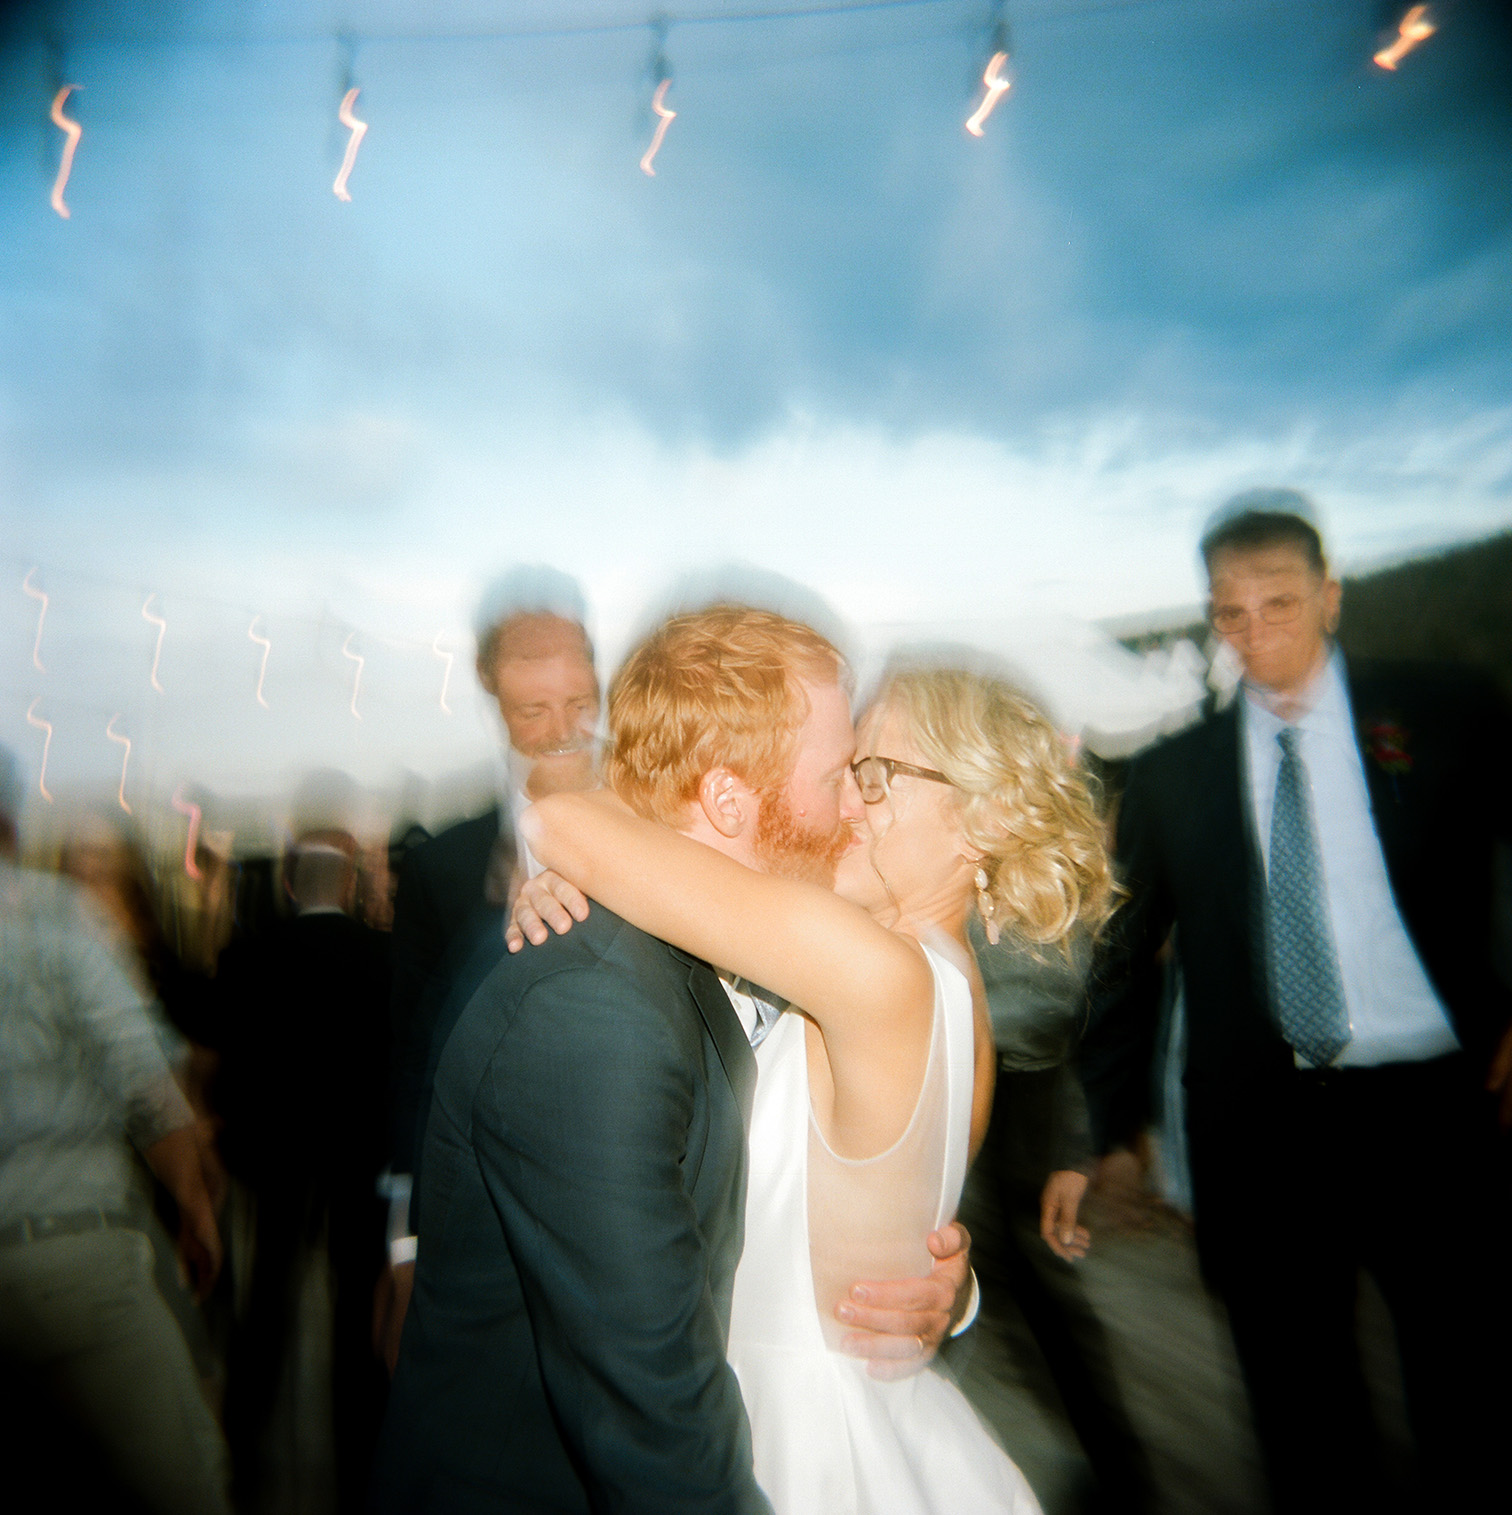 Destination Wedding in Colorado, Bride Groom Kissing on Dance Floor, Holga Photography,